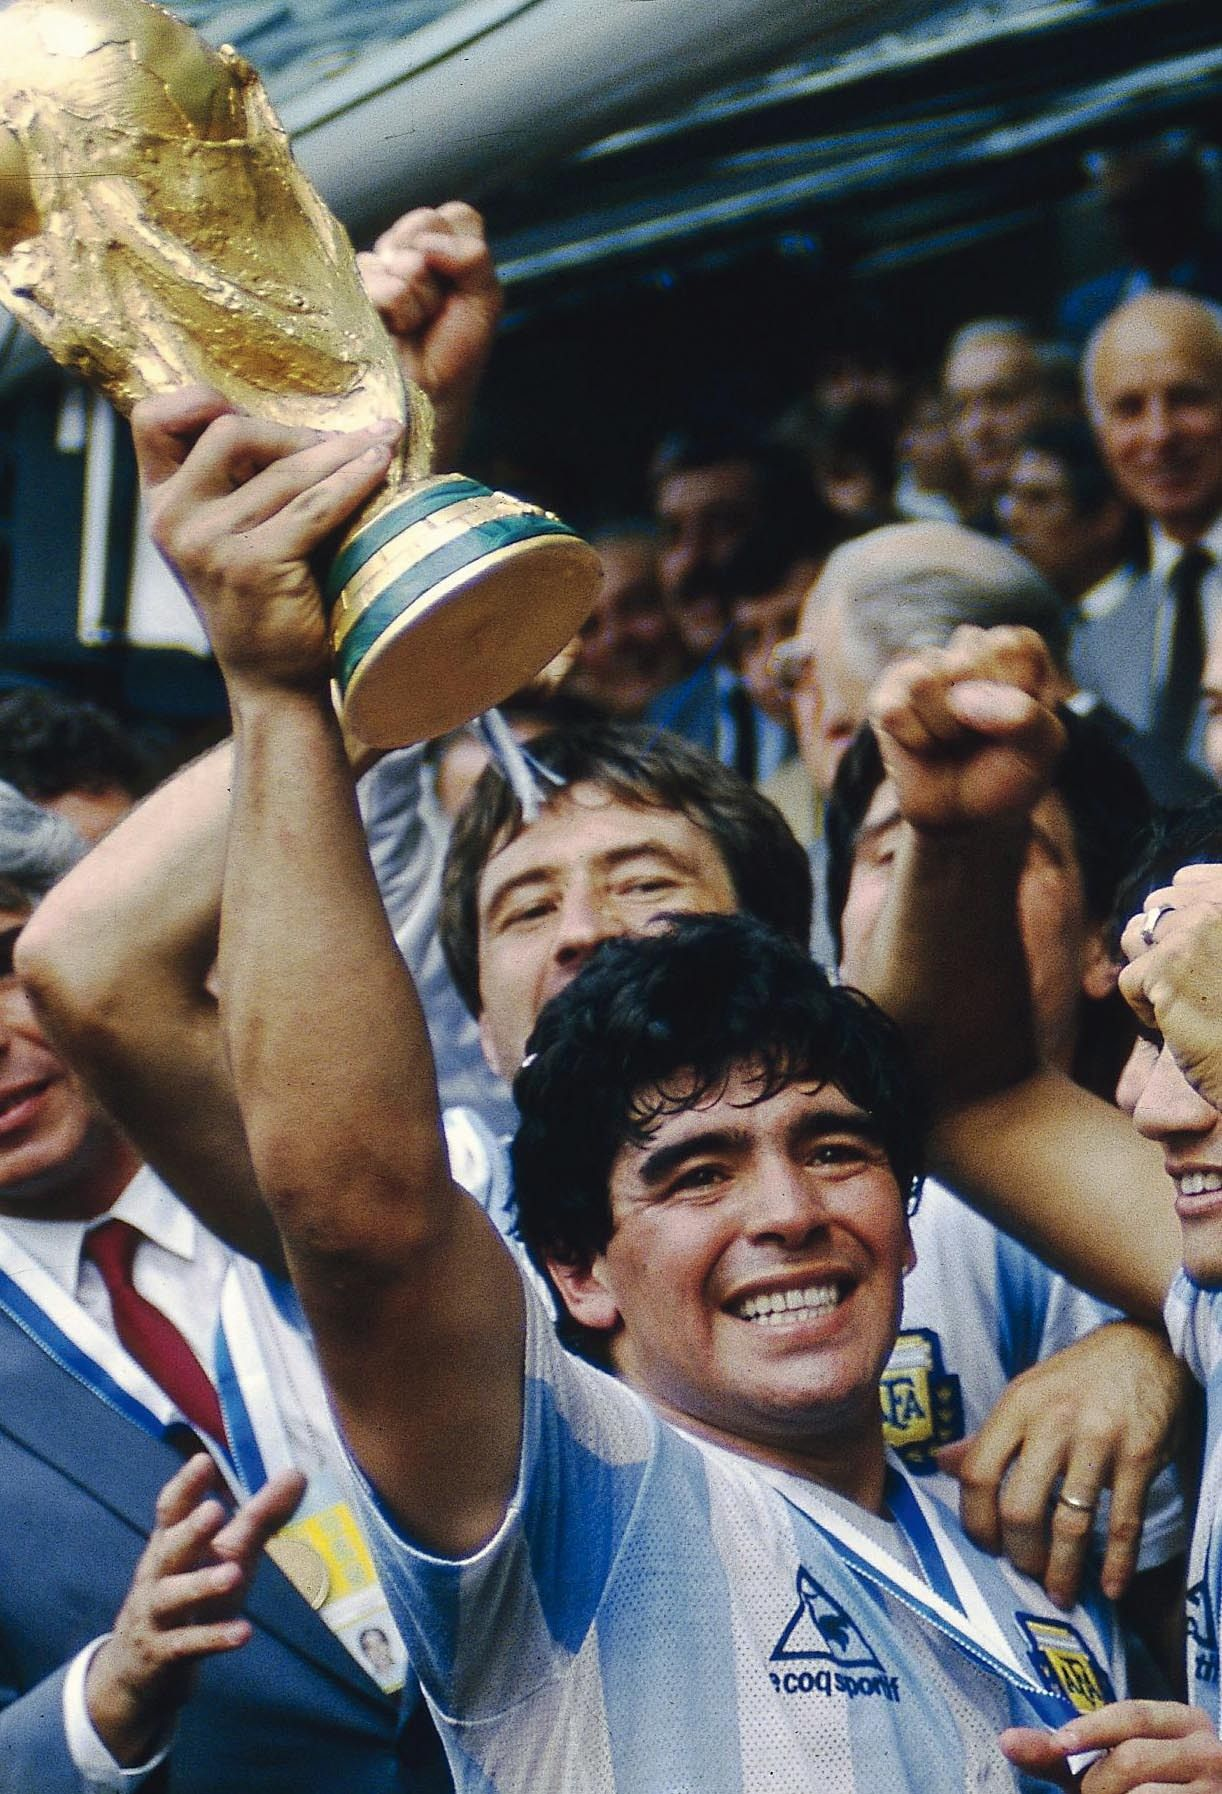 Diego Maradona Holds Aloft The World Cup Trophy 29 June 1986 Source Hublot Argentina Football Team World Football Argentina Football